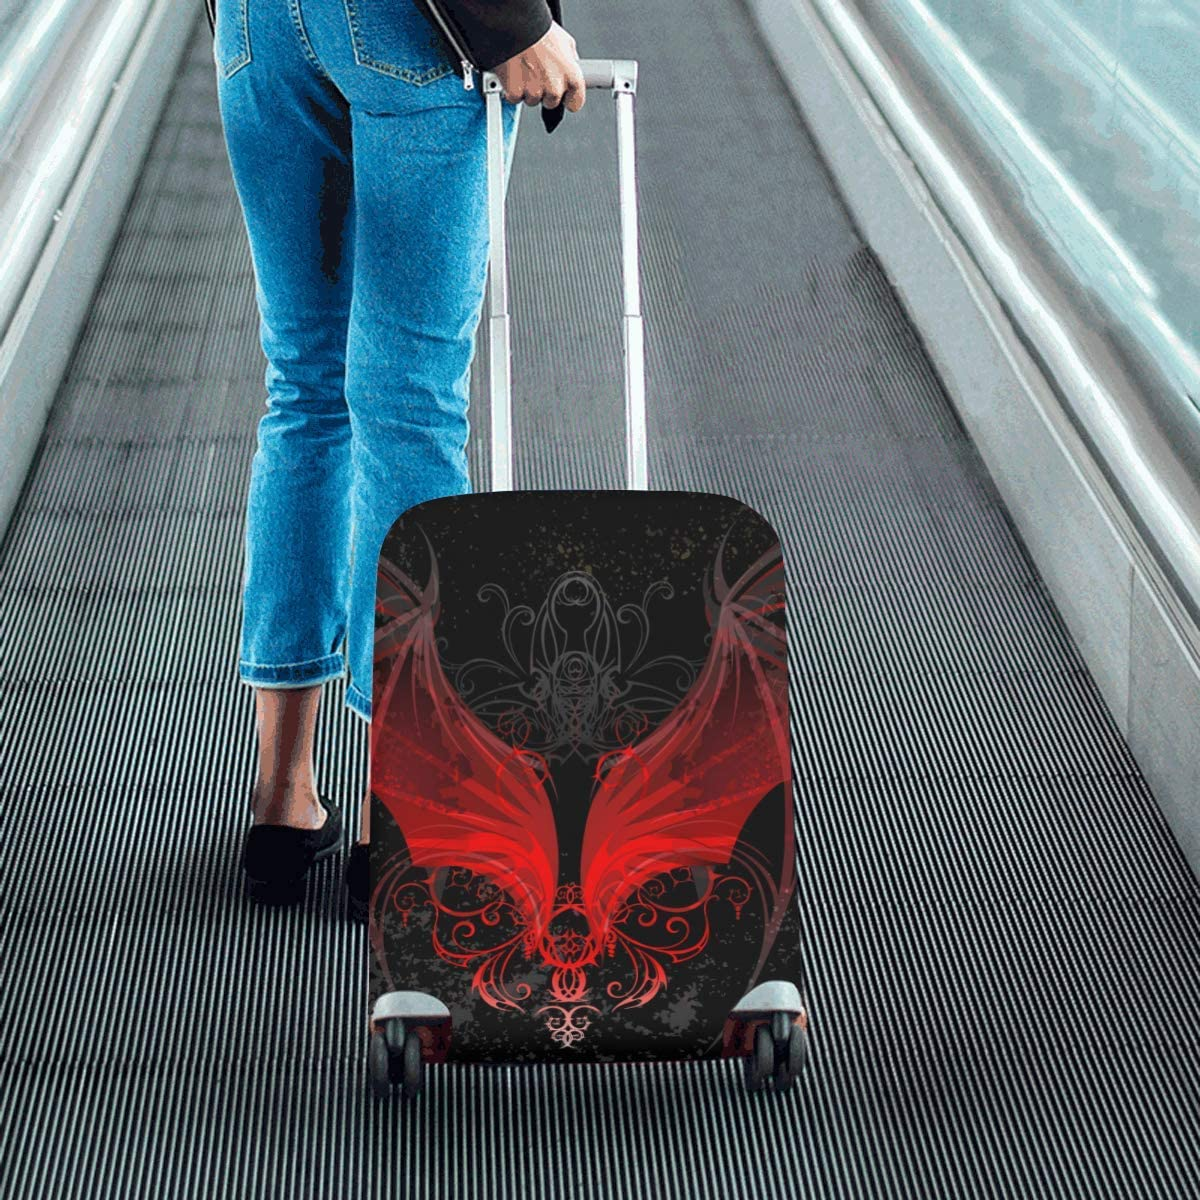 InterestPrint Luggage Cover Red Dragon Wings Traveling Luggage Cover Polyester Suitcase 20x24 Inch Unisex